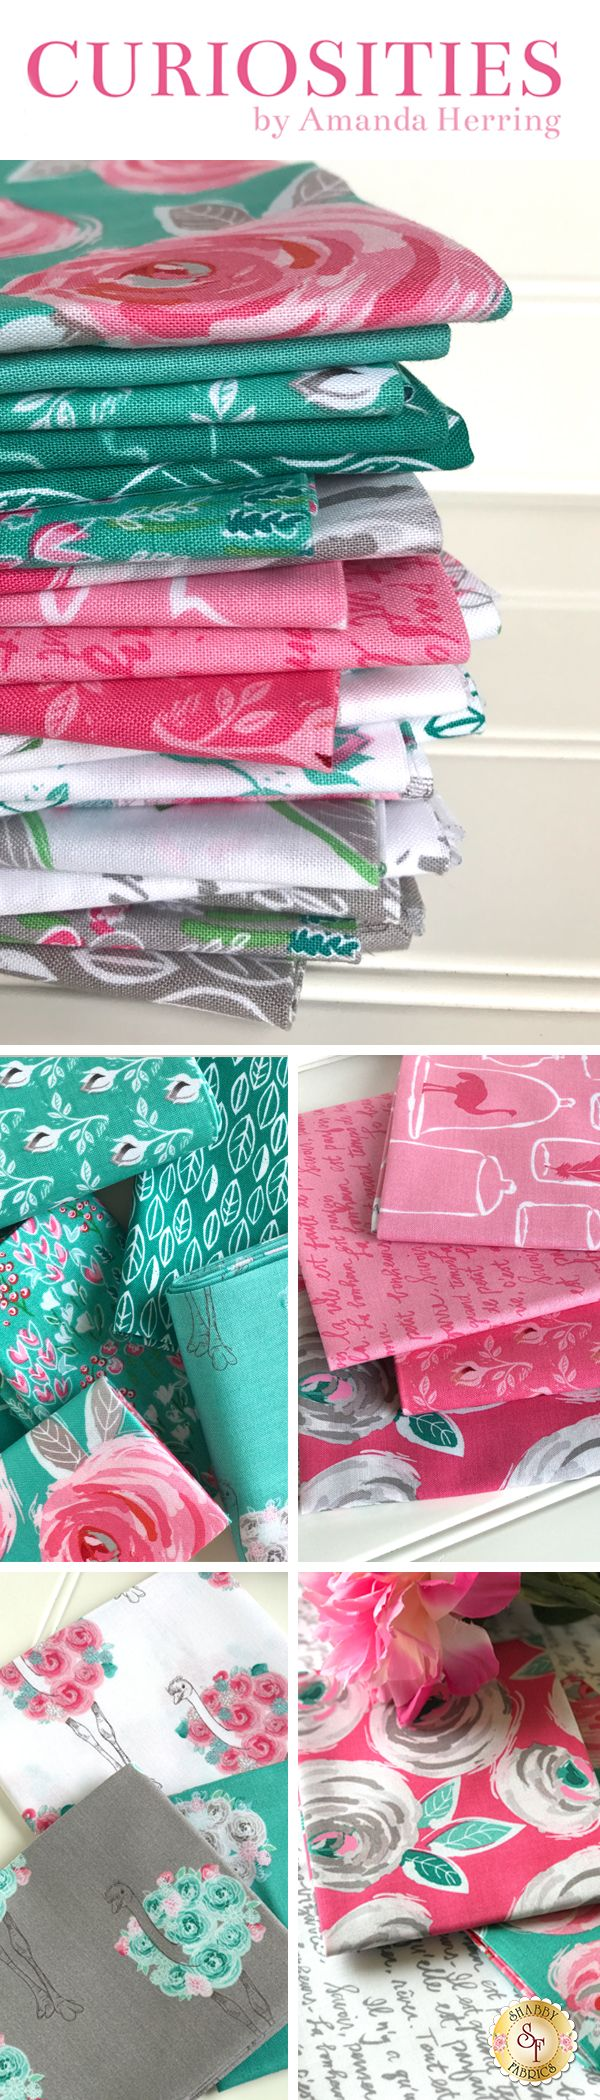 Curiosities by Amanda Herring for Riley Blake Designs is an adorable fabric collection available at Shabby Fabrics!